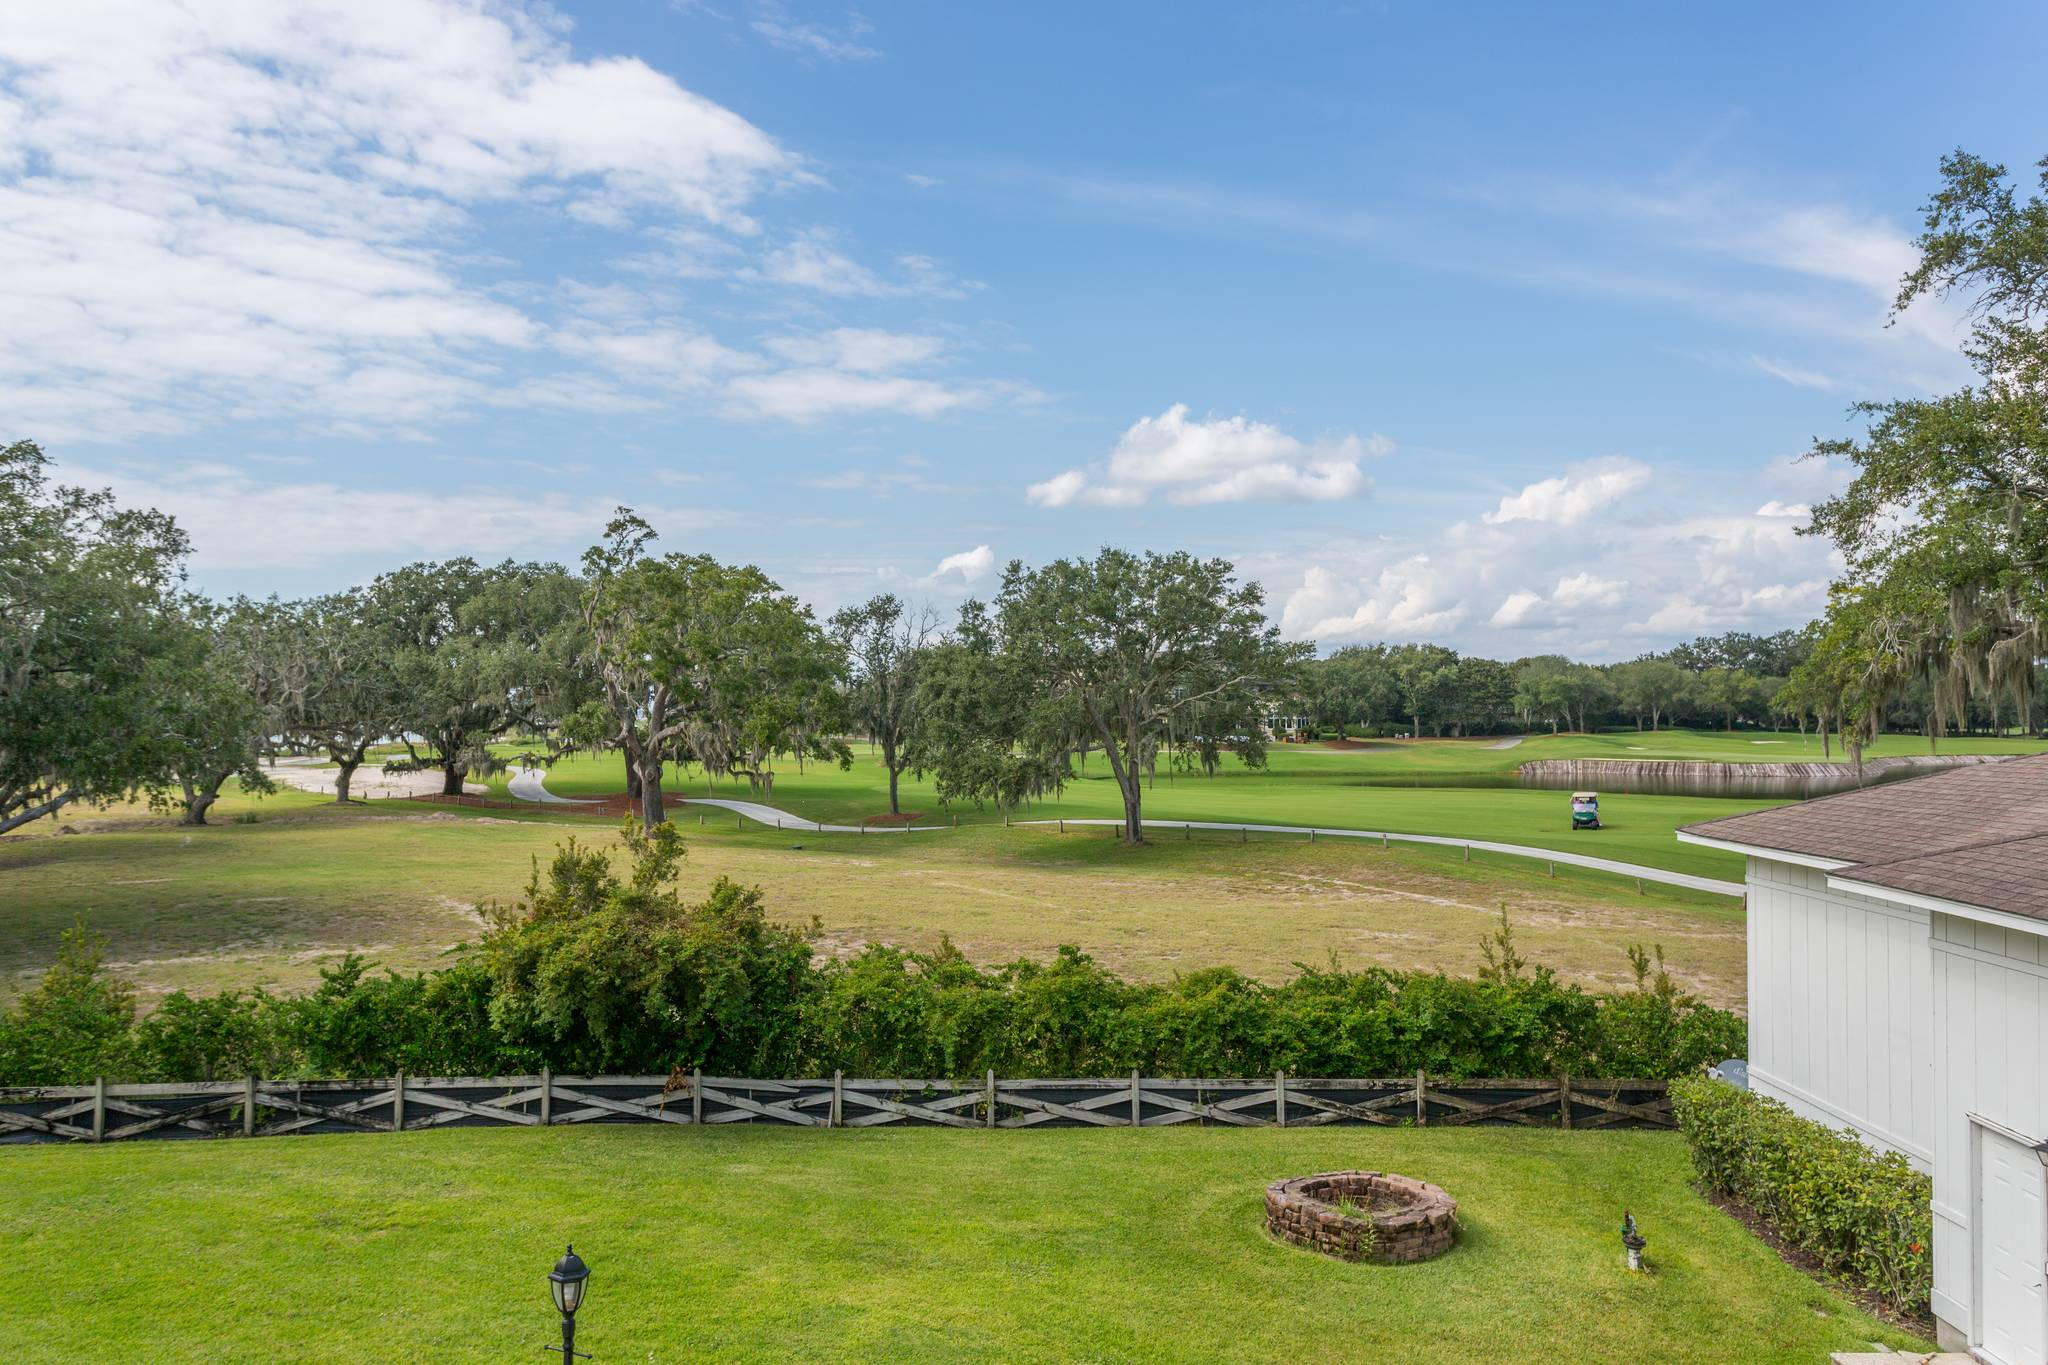 View from 154 Gould St on St Simons Island